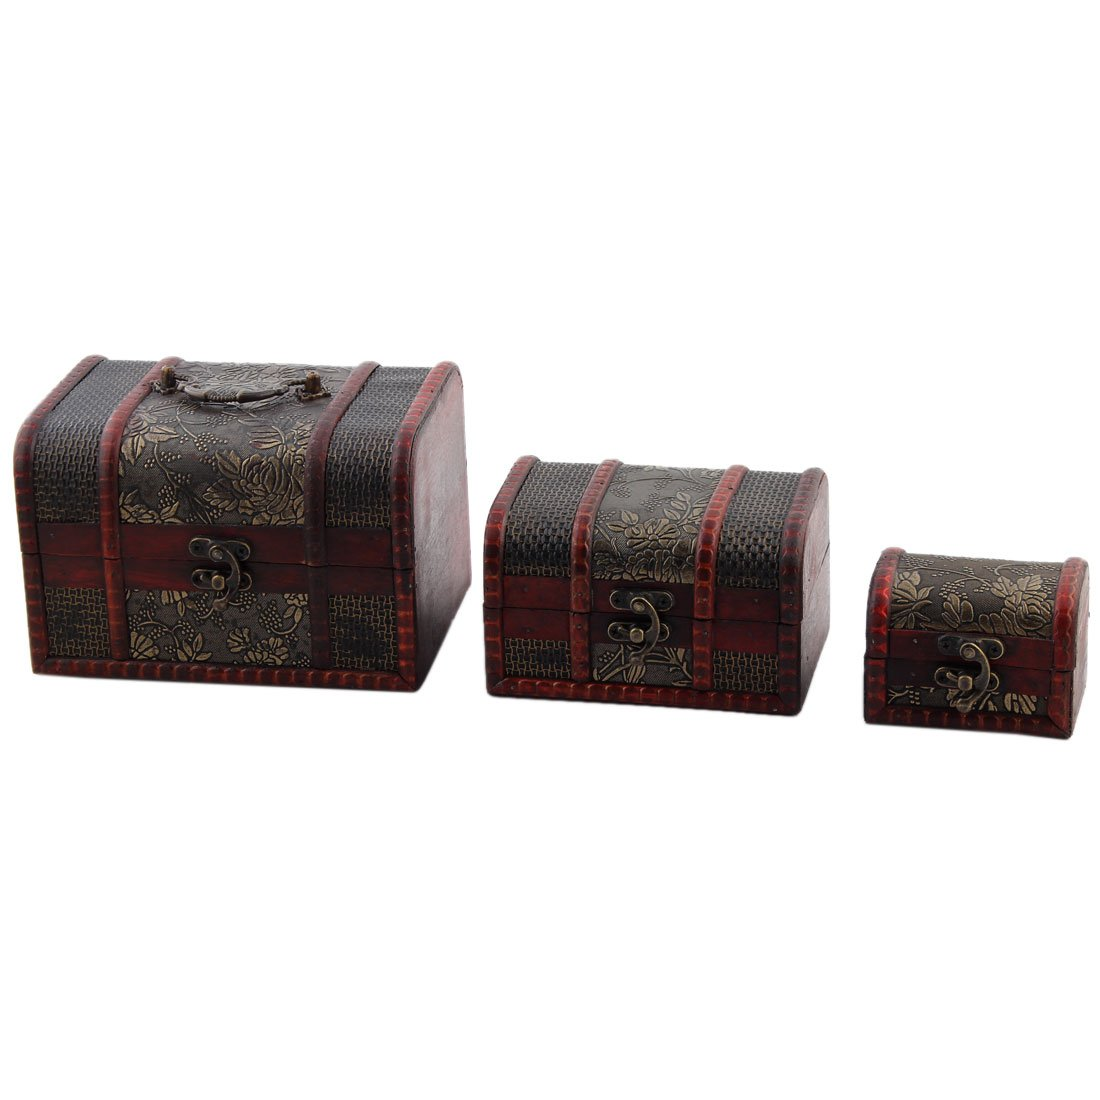 uxcell Flower Pattern Wood Household Retro Style Jewelry Storage Box Case 3 in 1 Dark Red